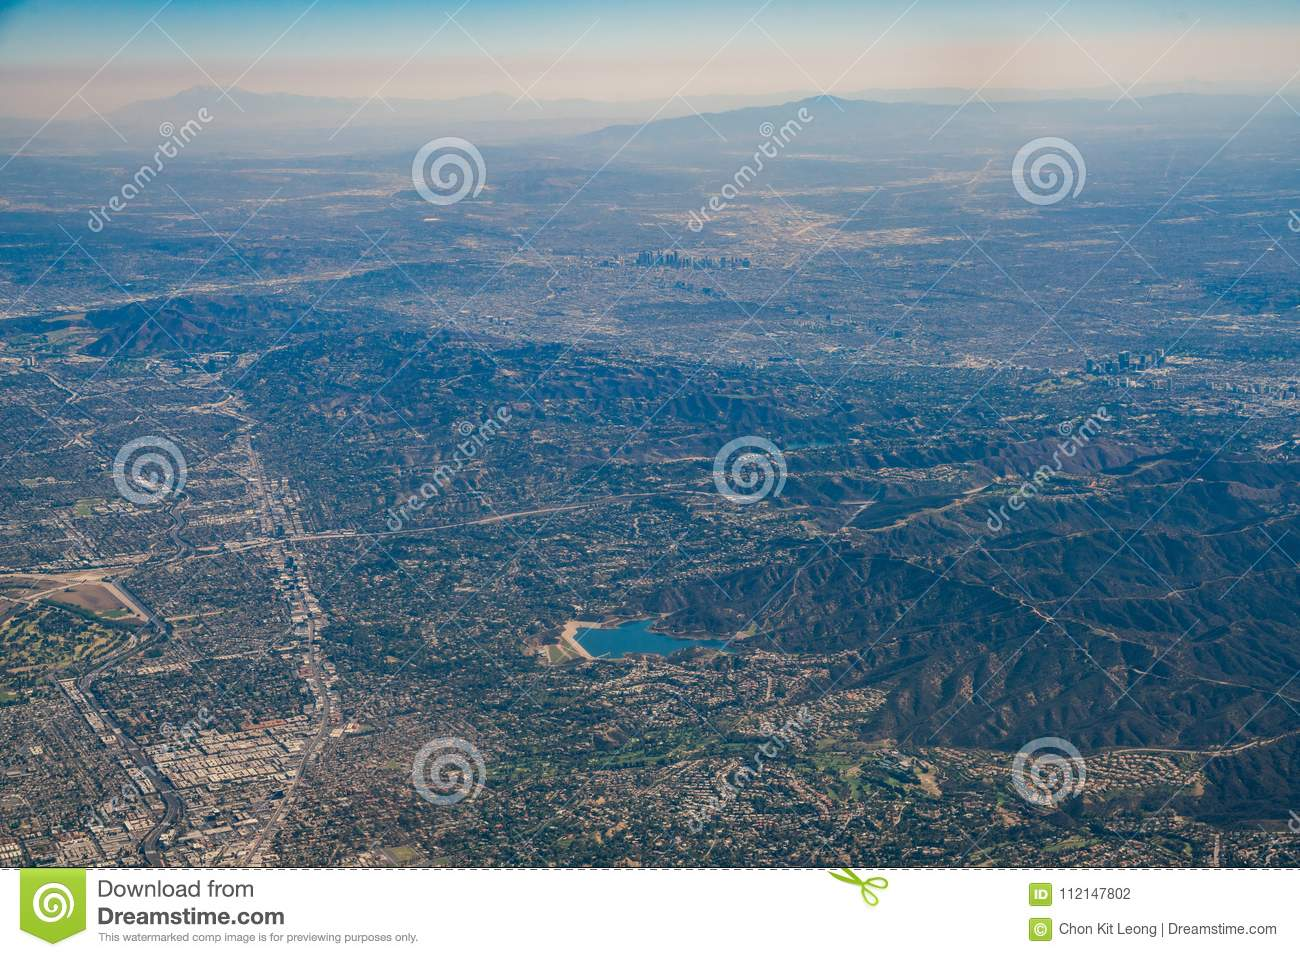 Aerial View Of Encino Reservoir, Van Nuys, Sherman Oaks